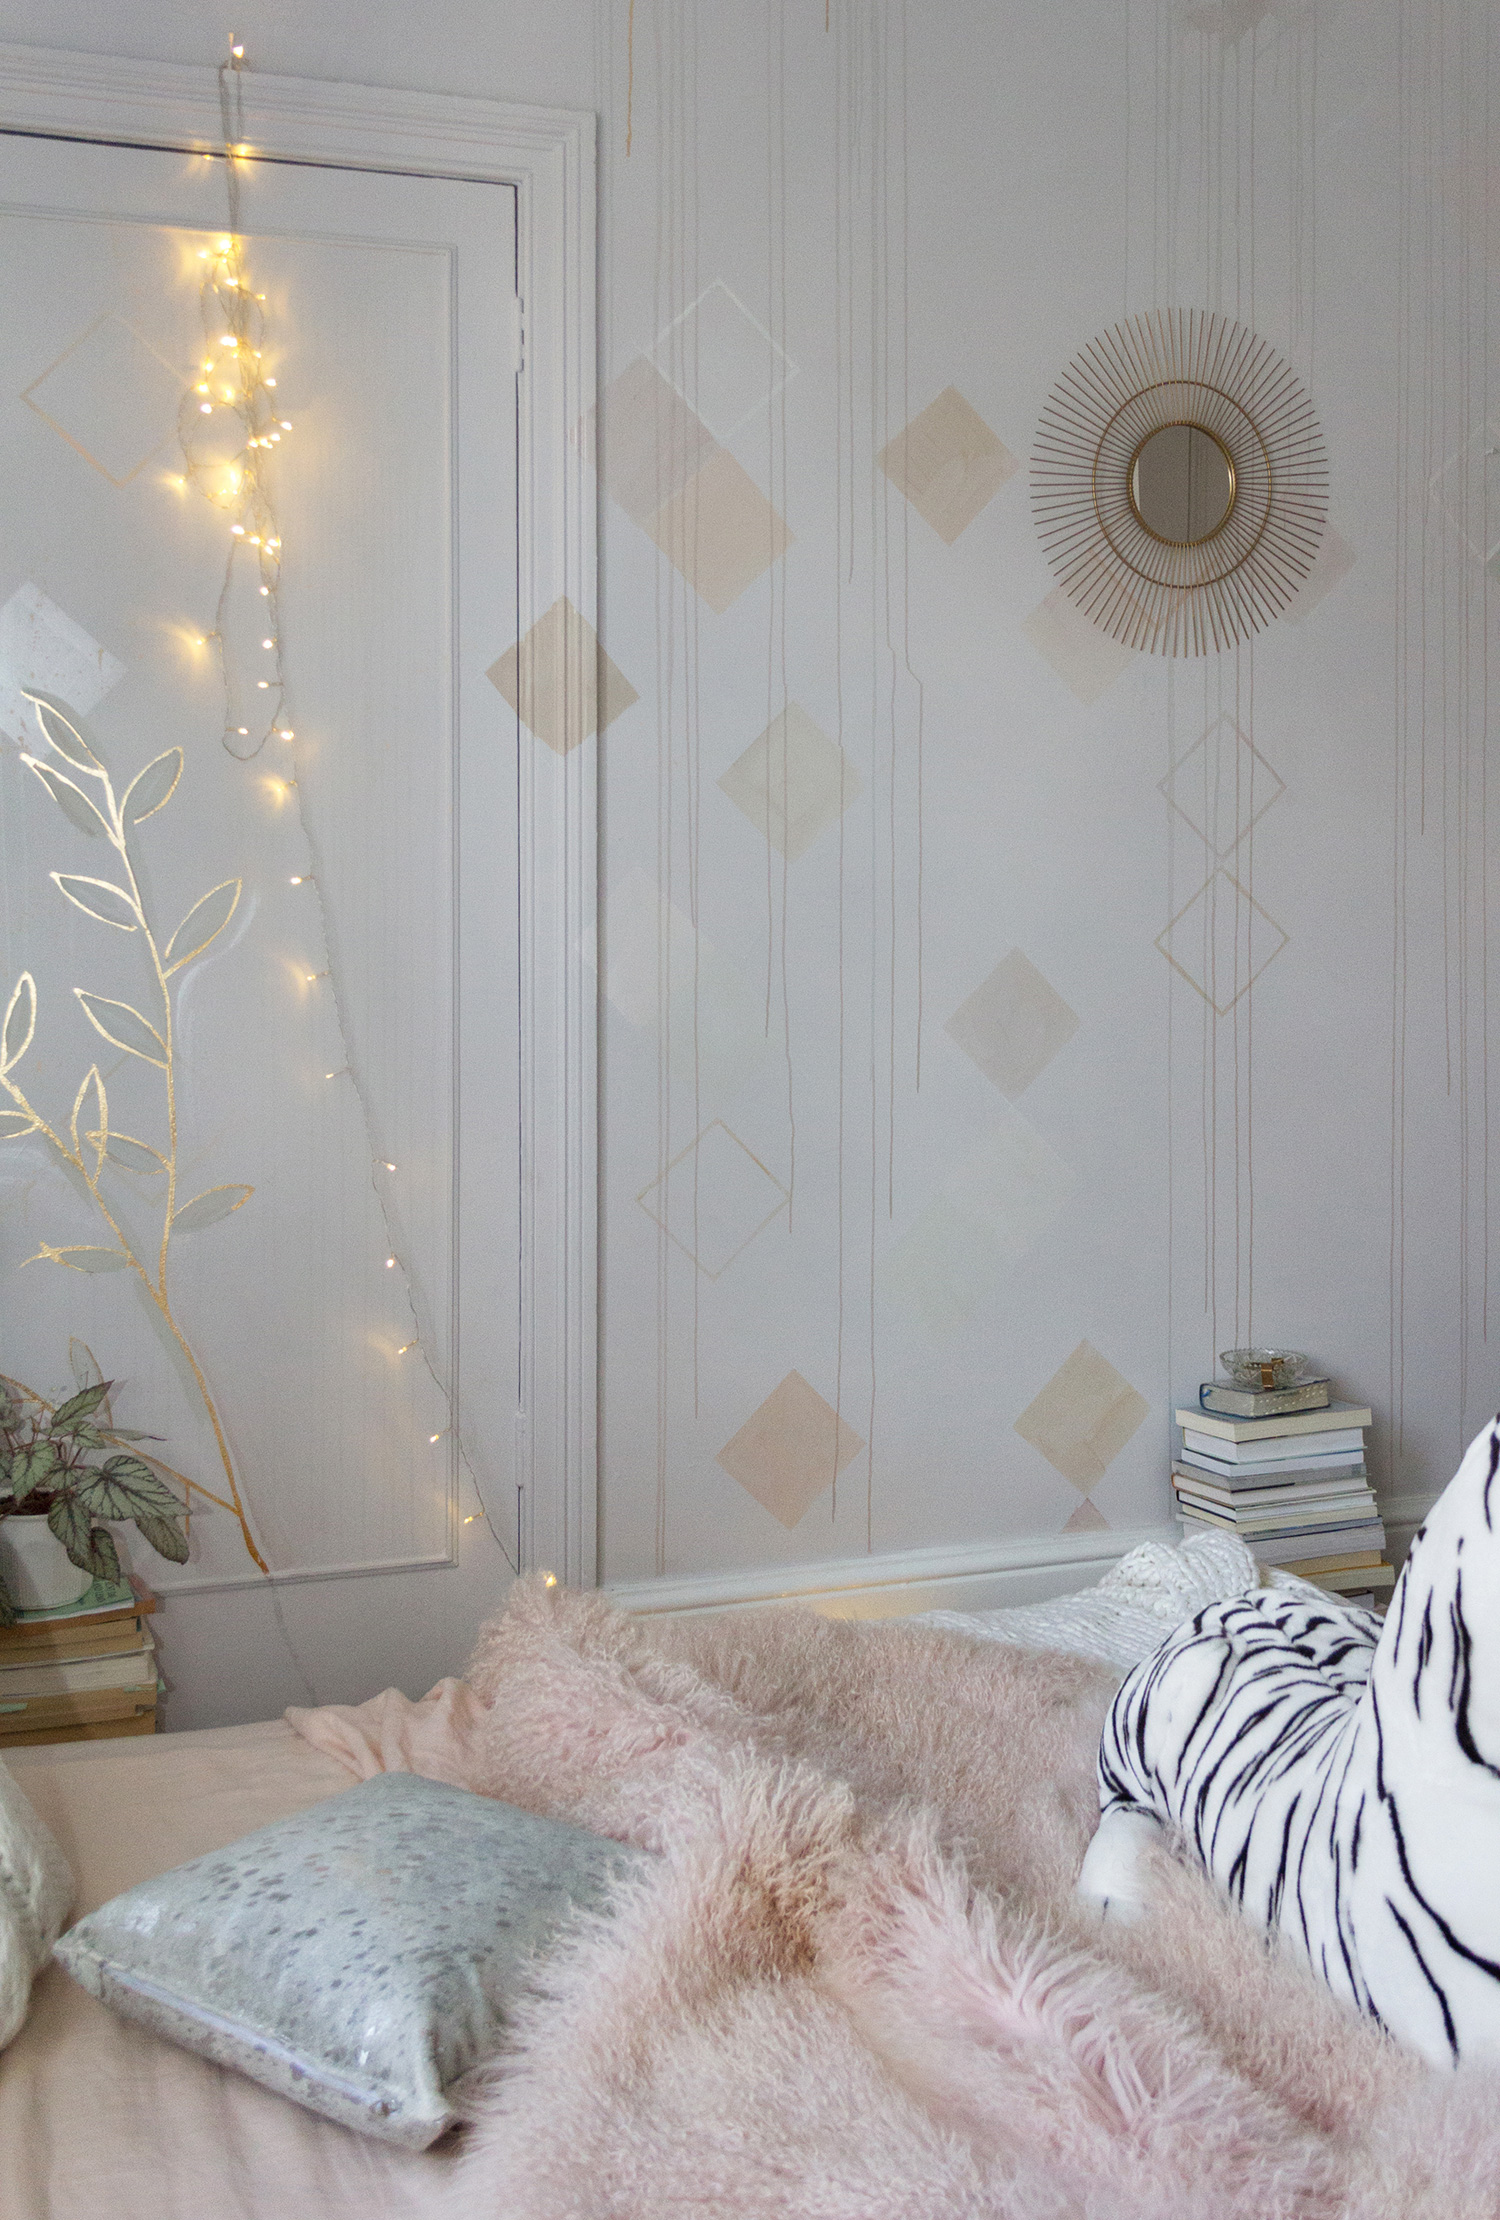 Pastel bedroom mural featuring geometric shapes and dripping paint. The bed is made with linen bedding and a soft, pink throw while fairy lights cast a magic glow.